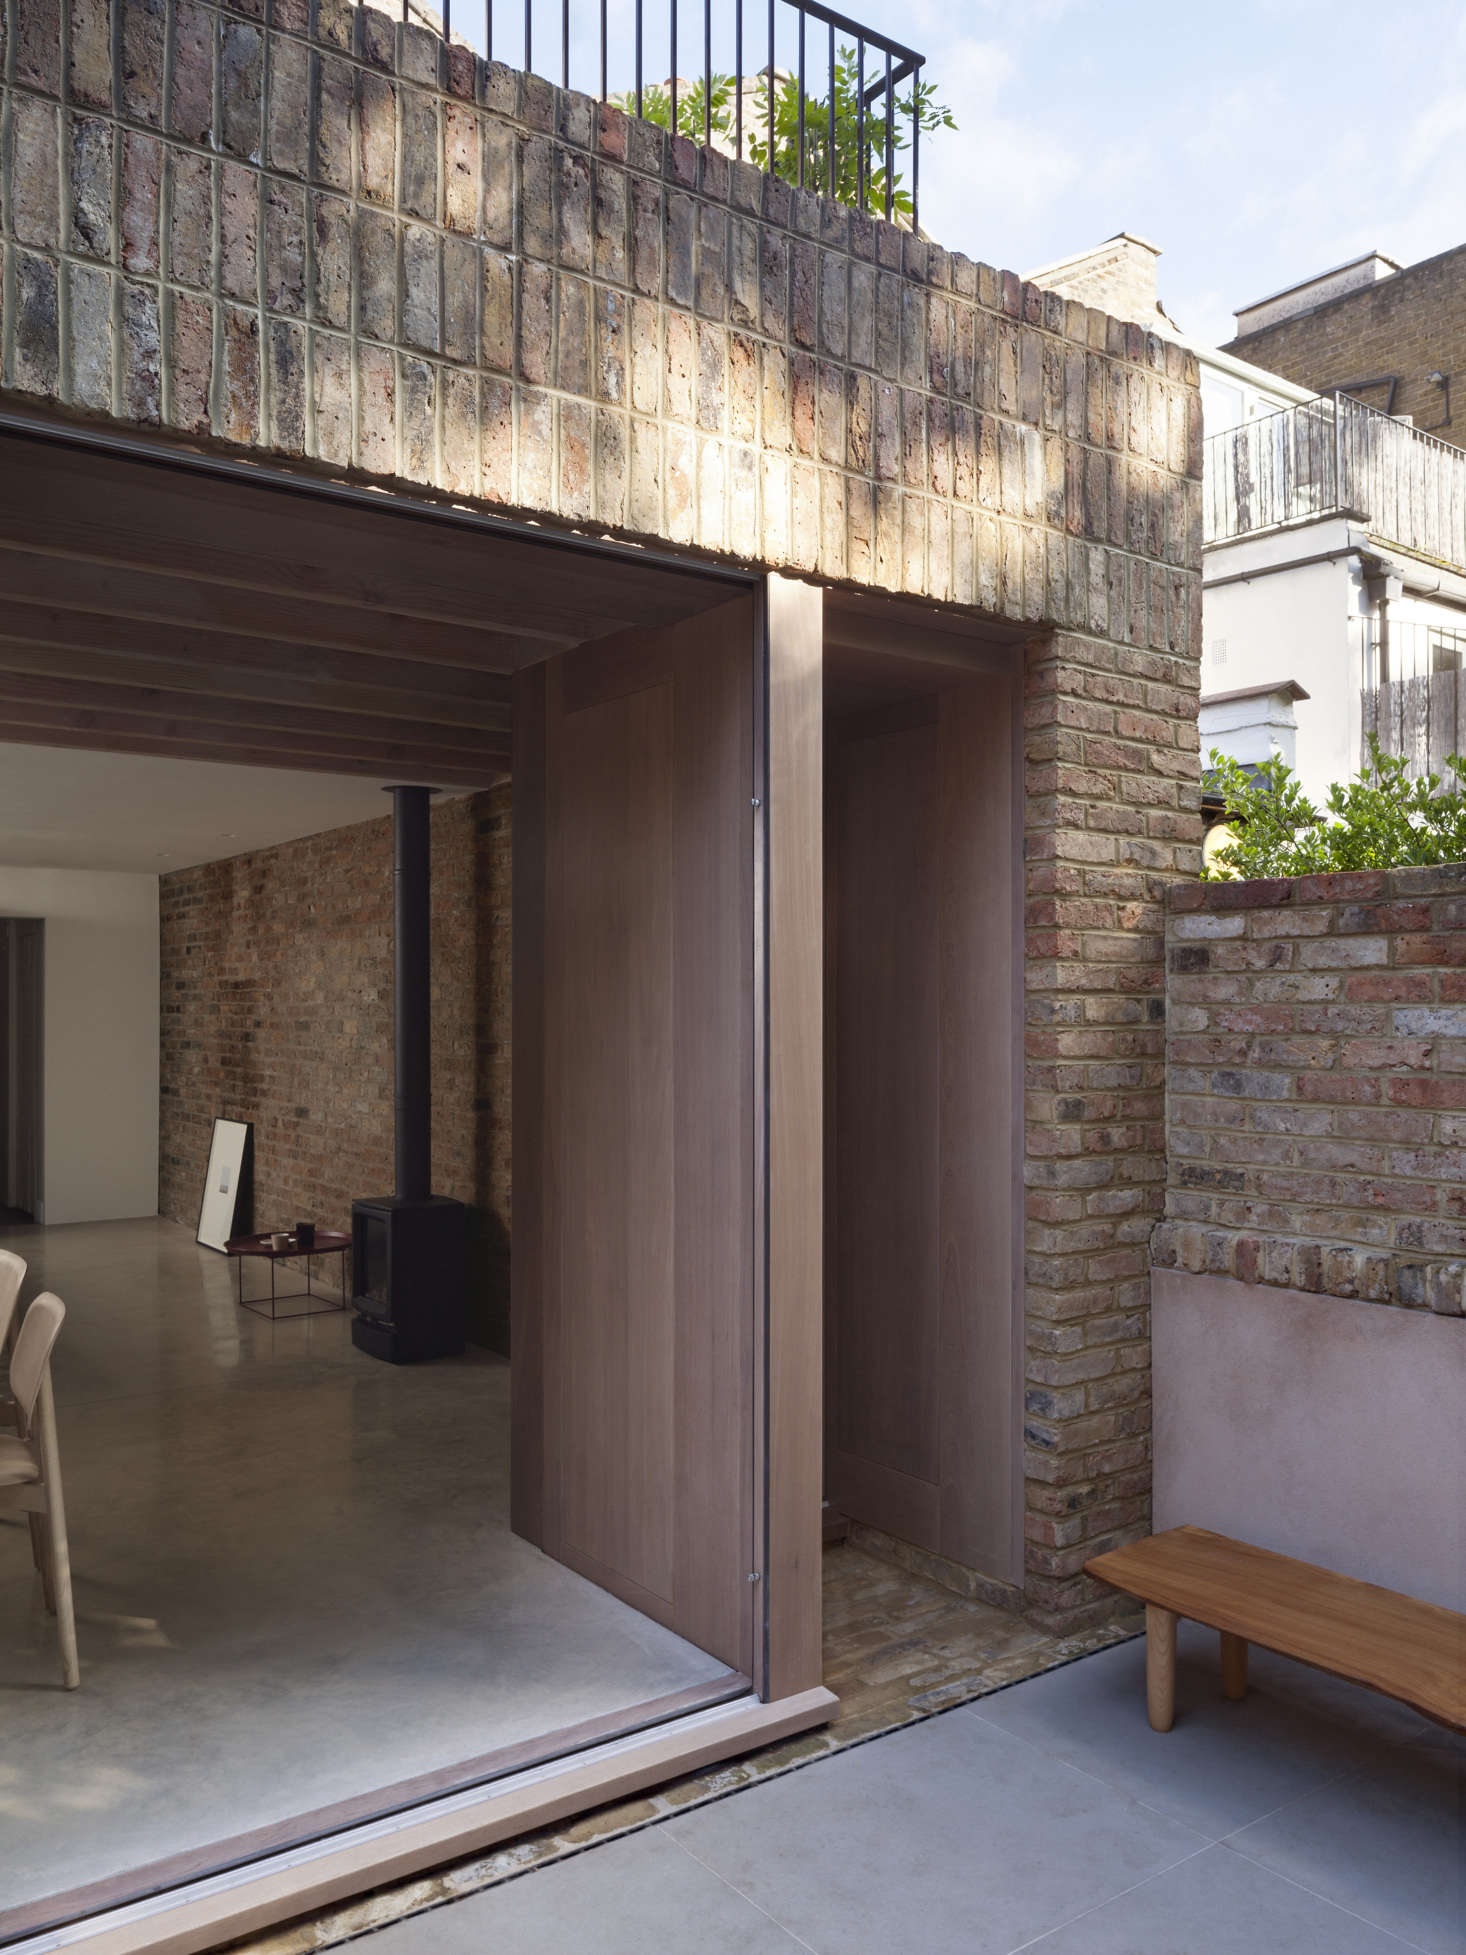 A detail of the extension, which opens onto a sunken brick and concrete paver patio. The live-edge bench is made from a single oak plank from Andrea and Pete's previous garden in Suffolk that was customized with oak legs byAndrew Tutka.